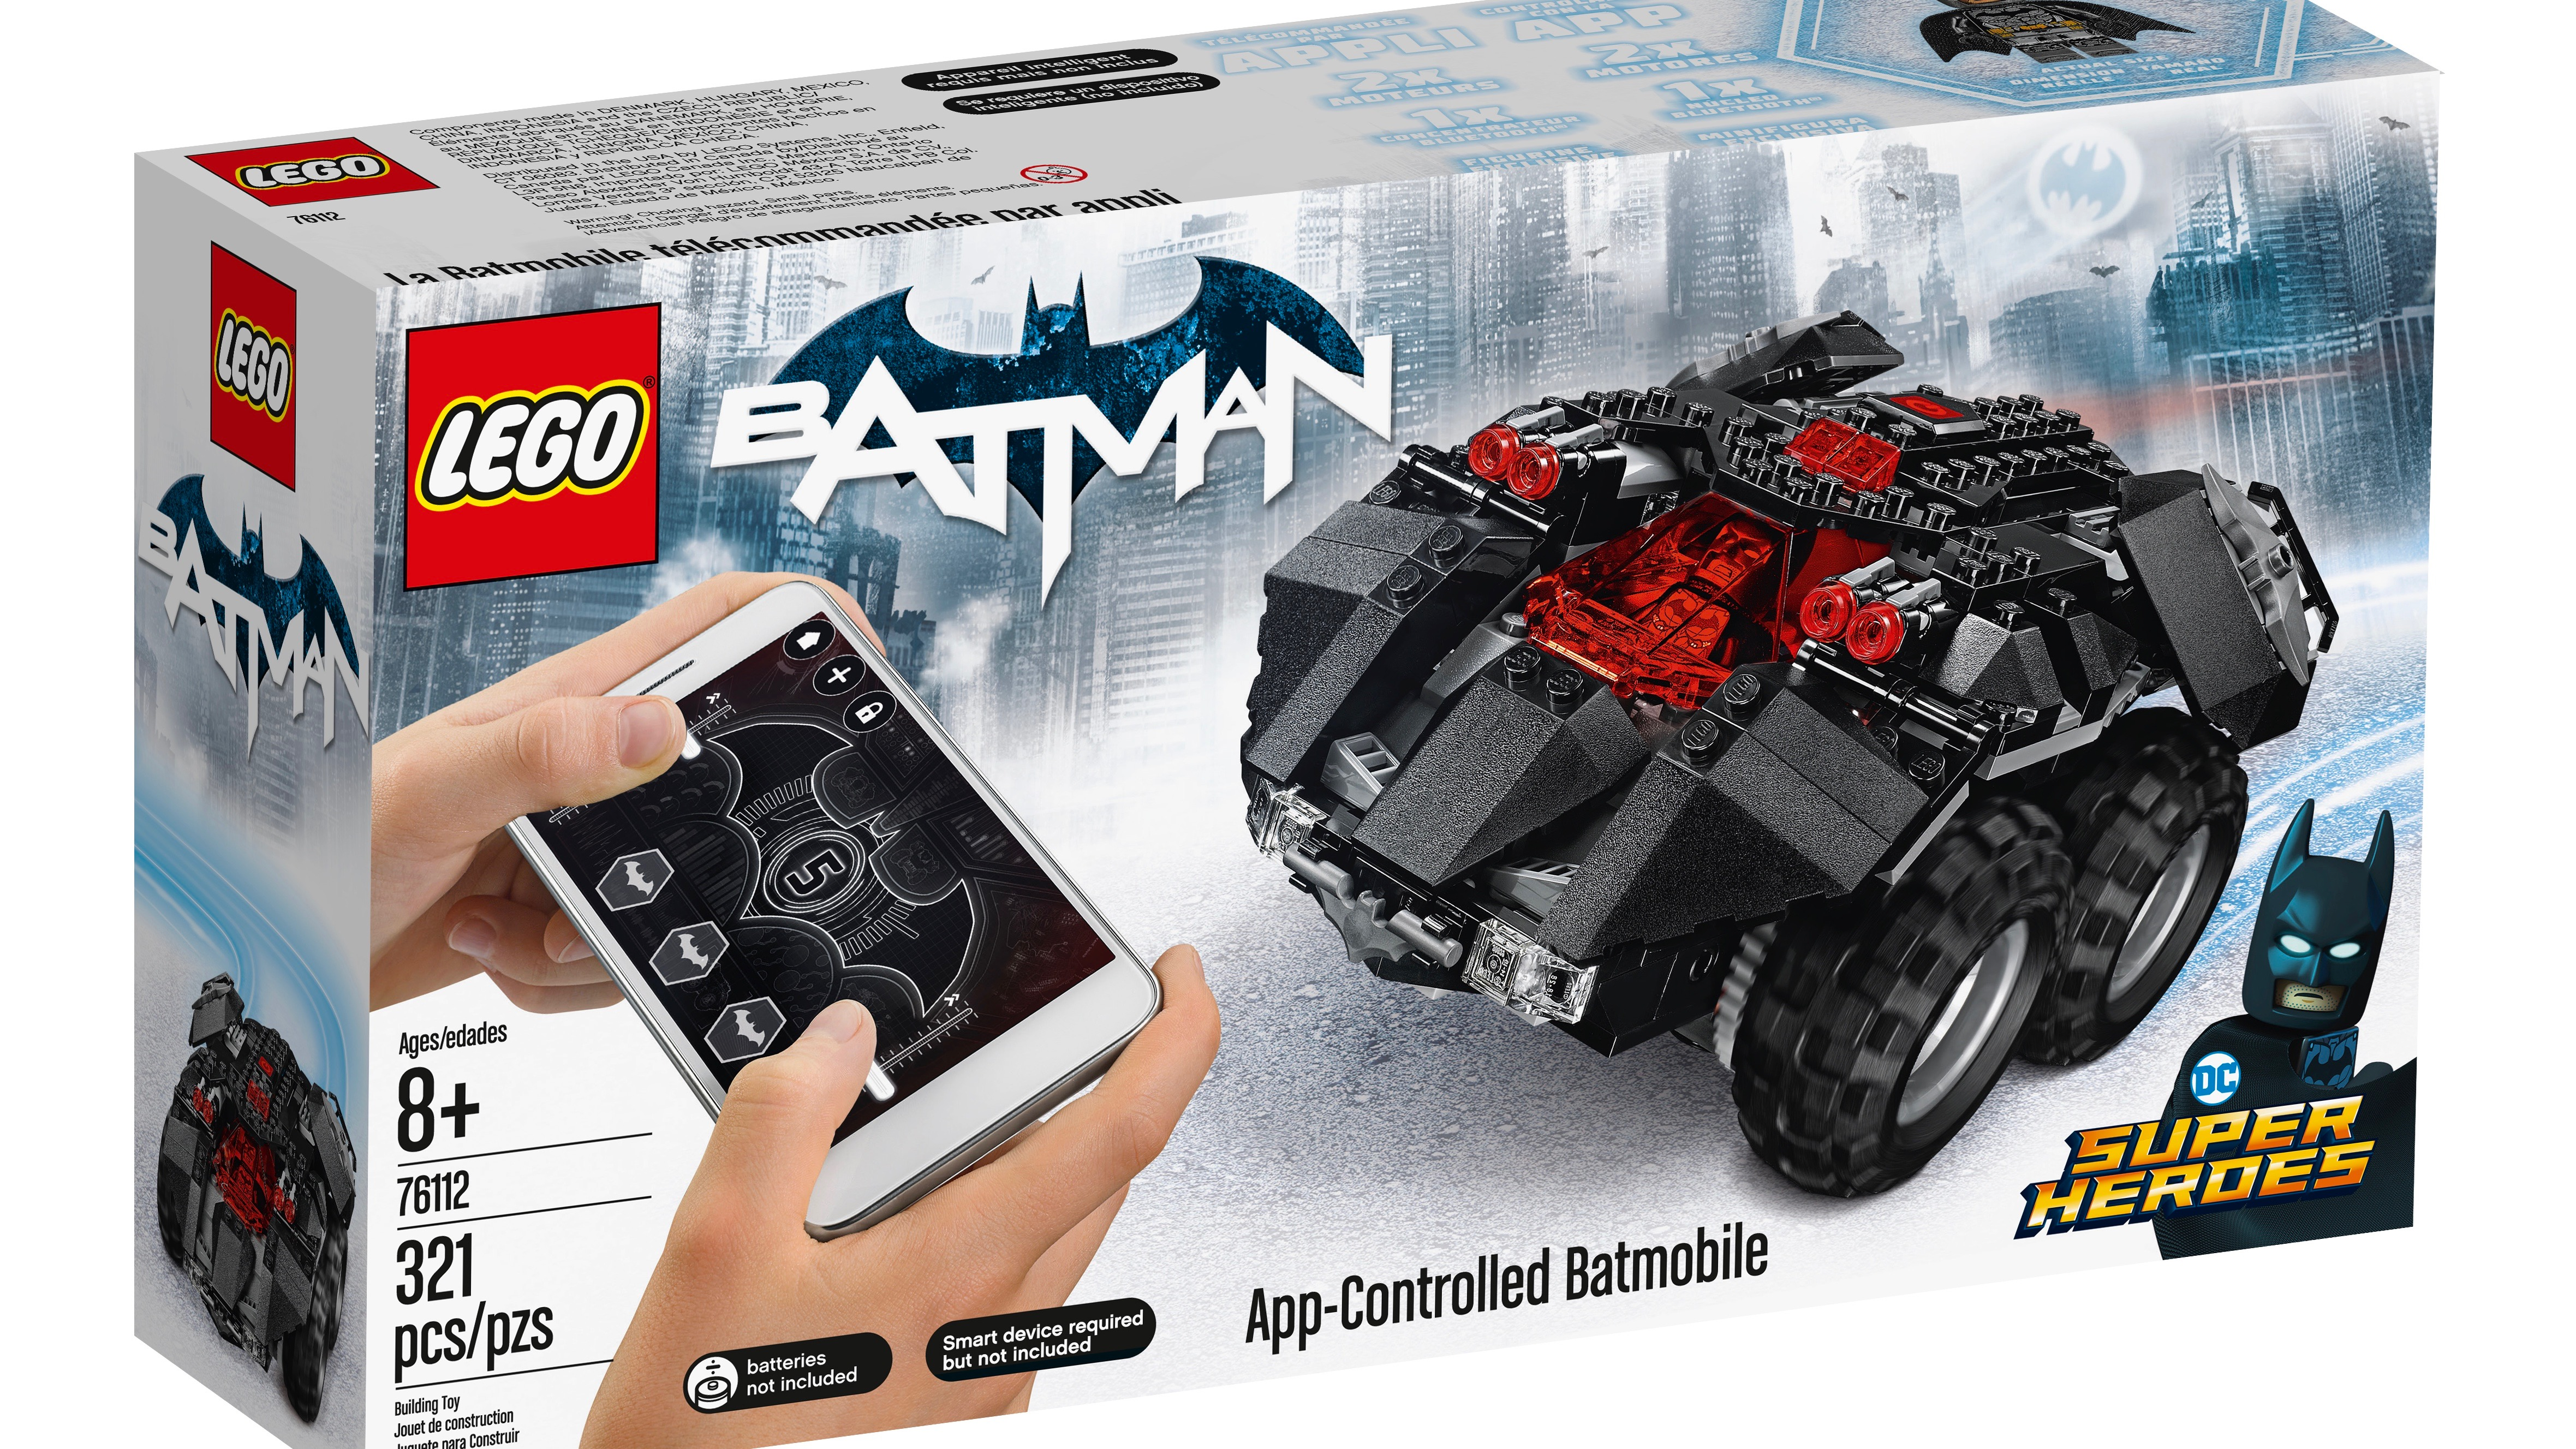 Legos Launching A Buildable App Controlled Batmobile This August R C Switch 3 For Radio Control Applications Techradar